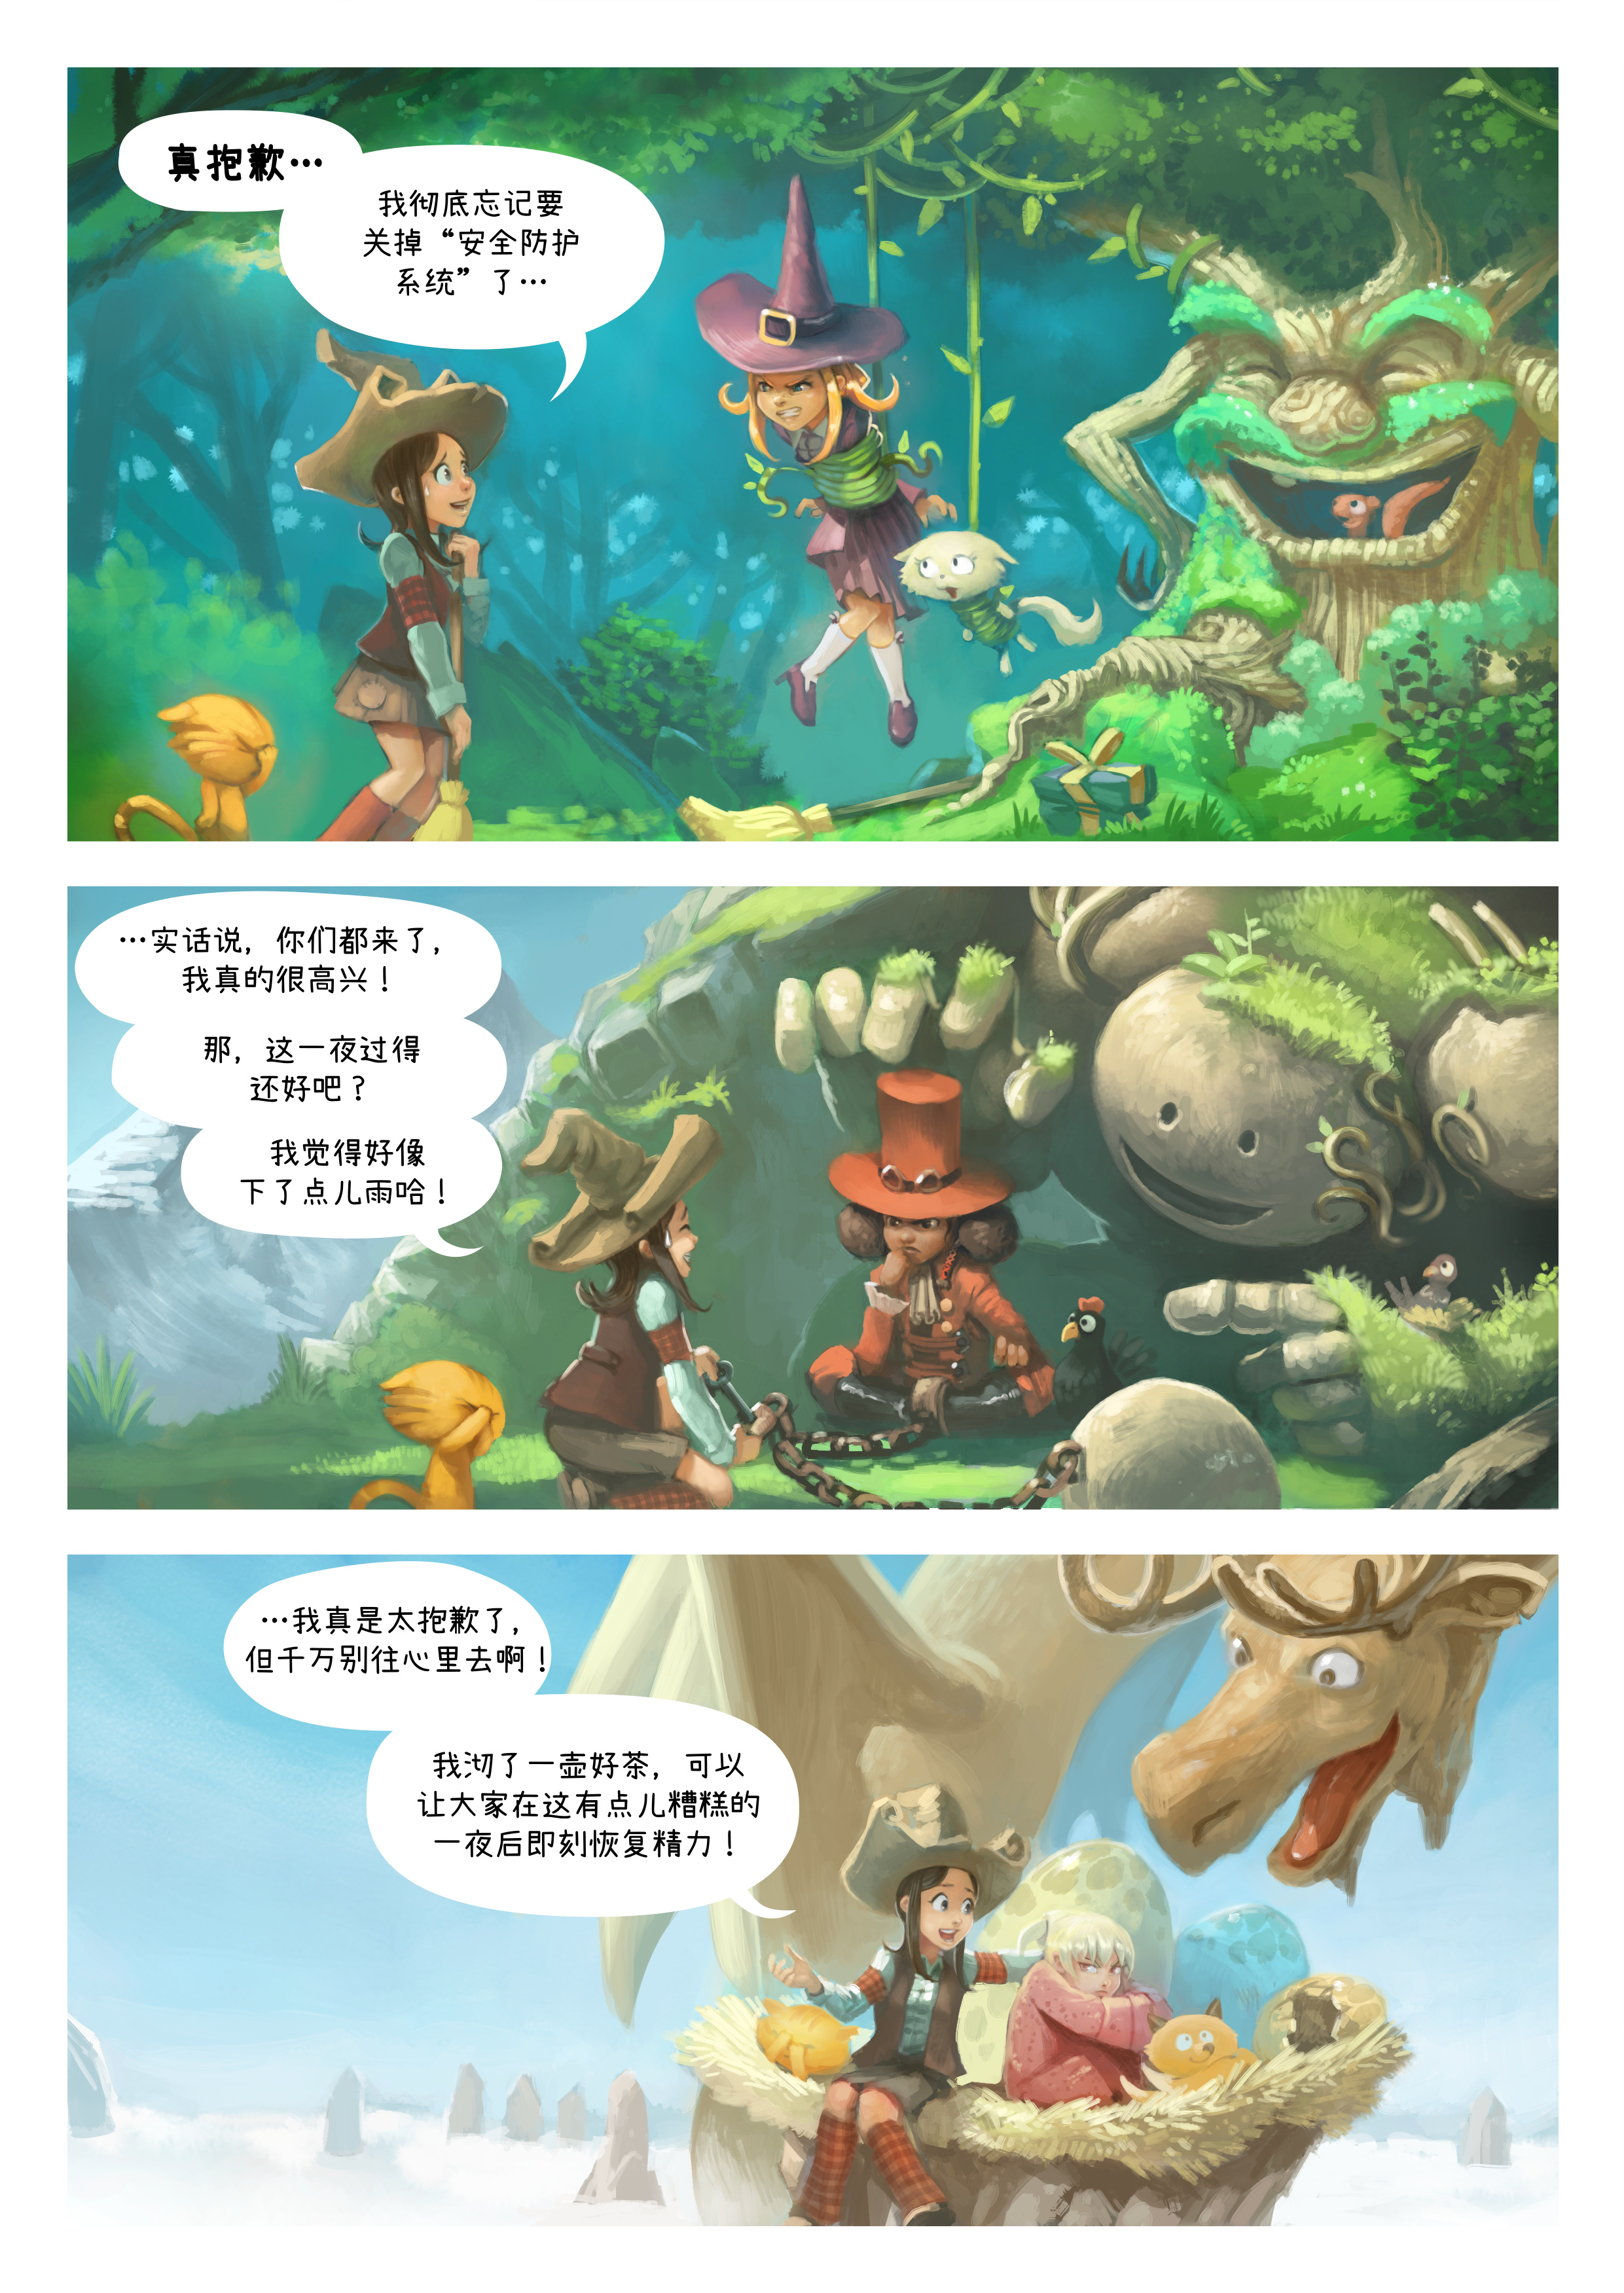 A webcomic page of Pepper&Carrot, 漫画全集 9 [cn], 页面 2